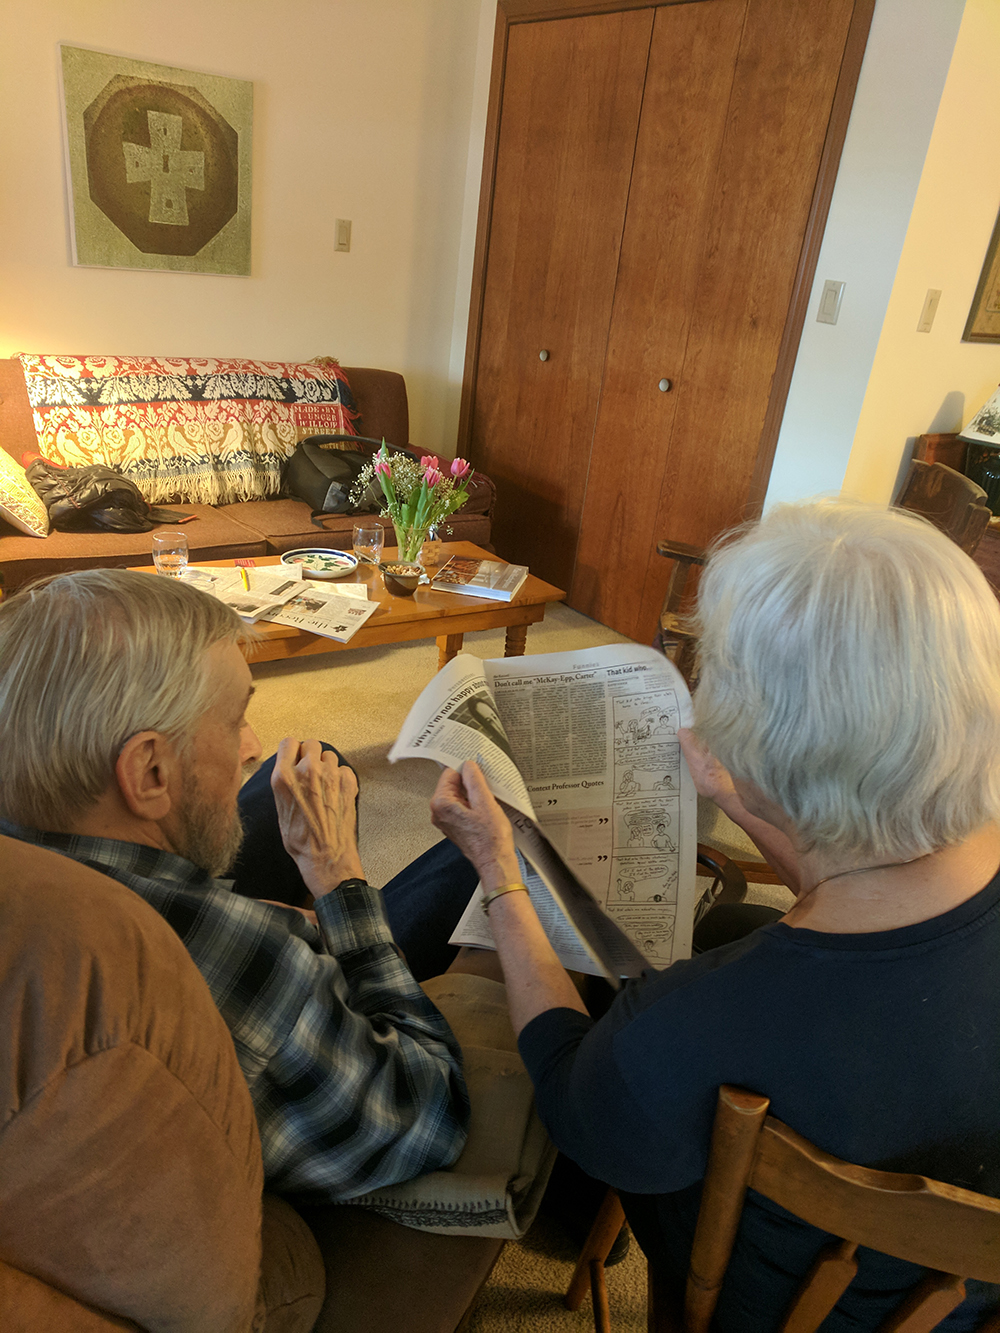 Couple looks at newspaper together